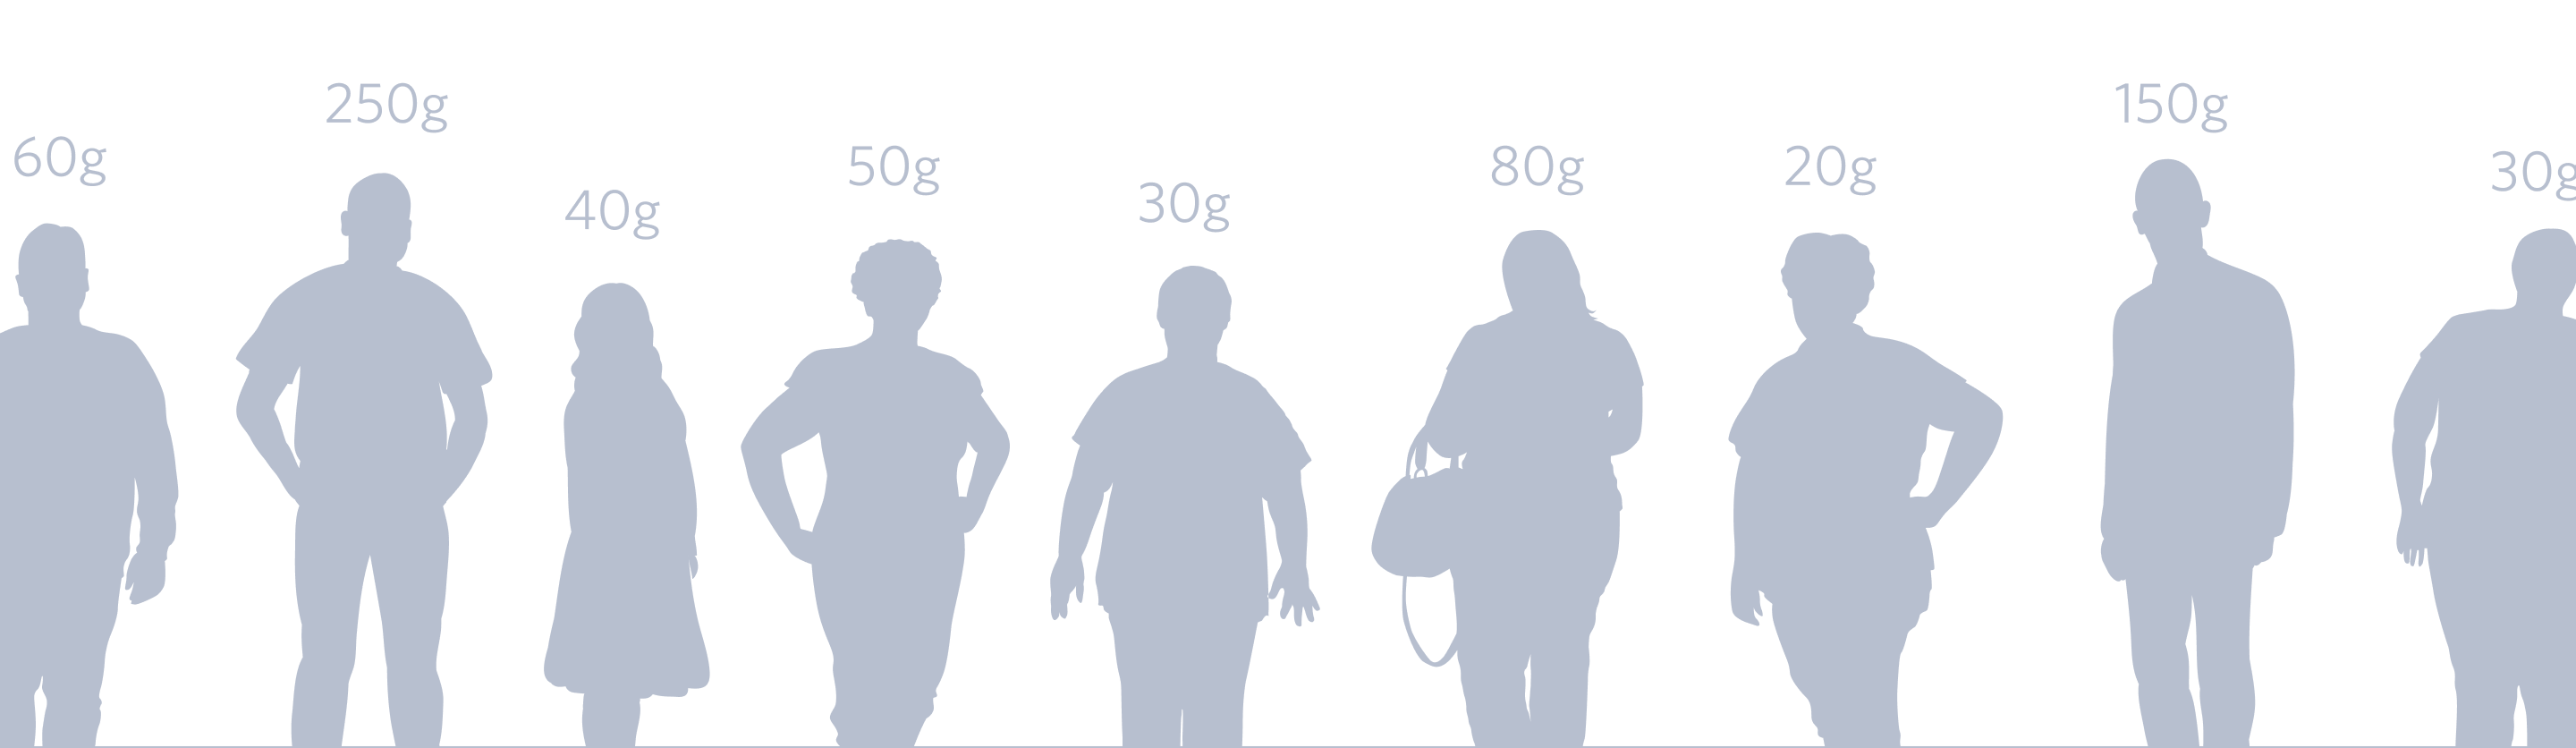 A row of silhouettes of variously shaped people